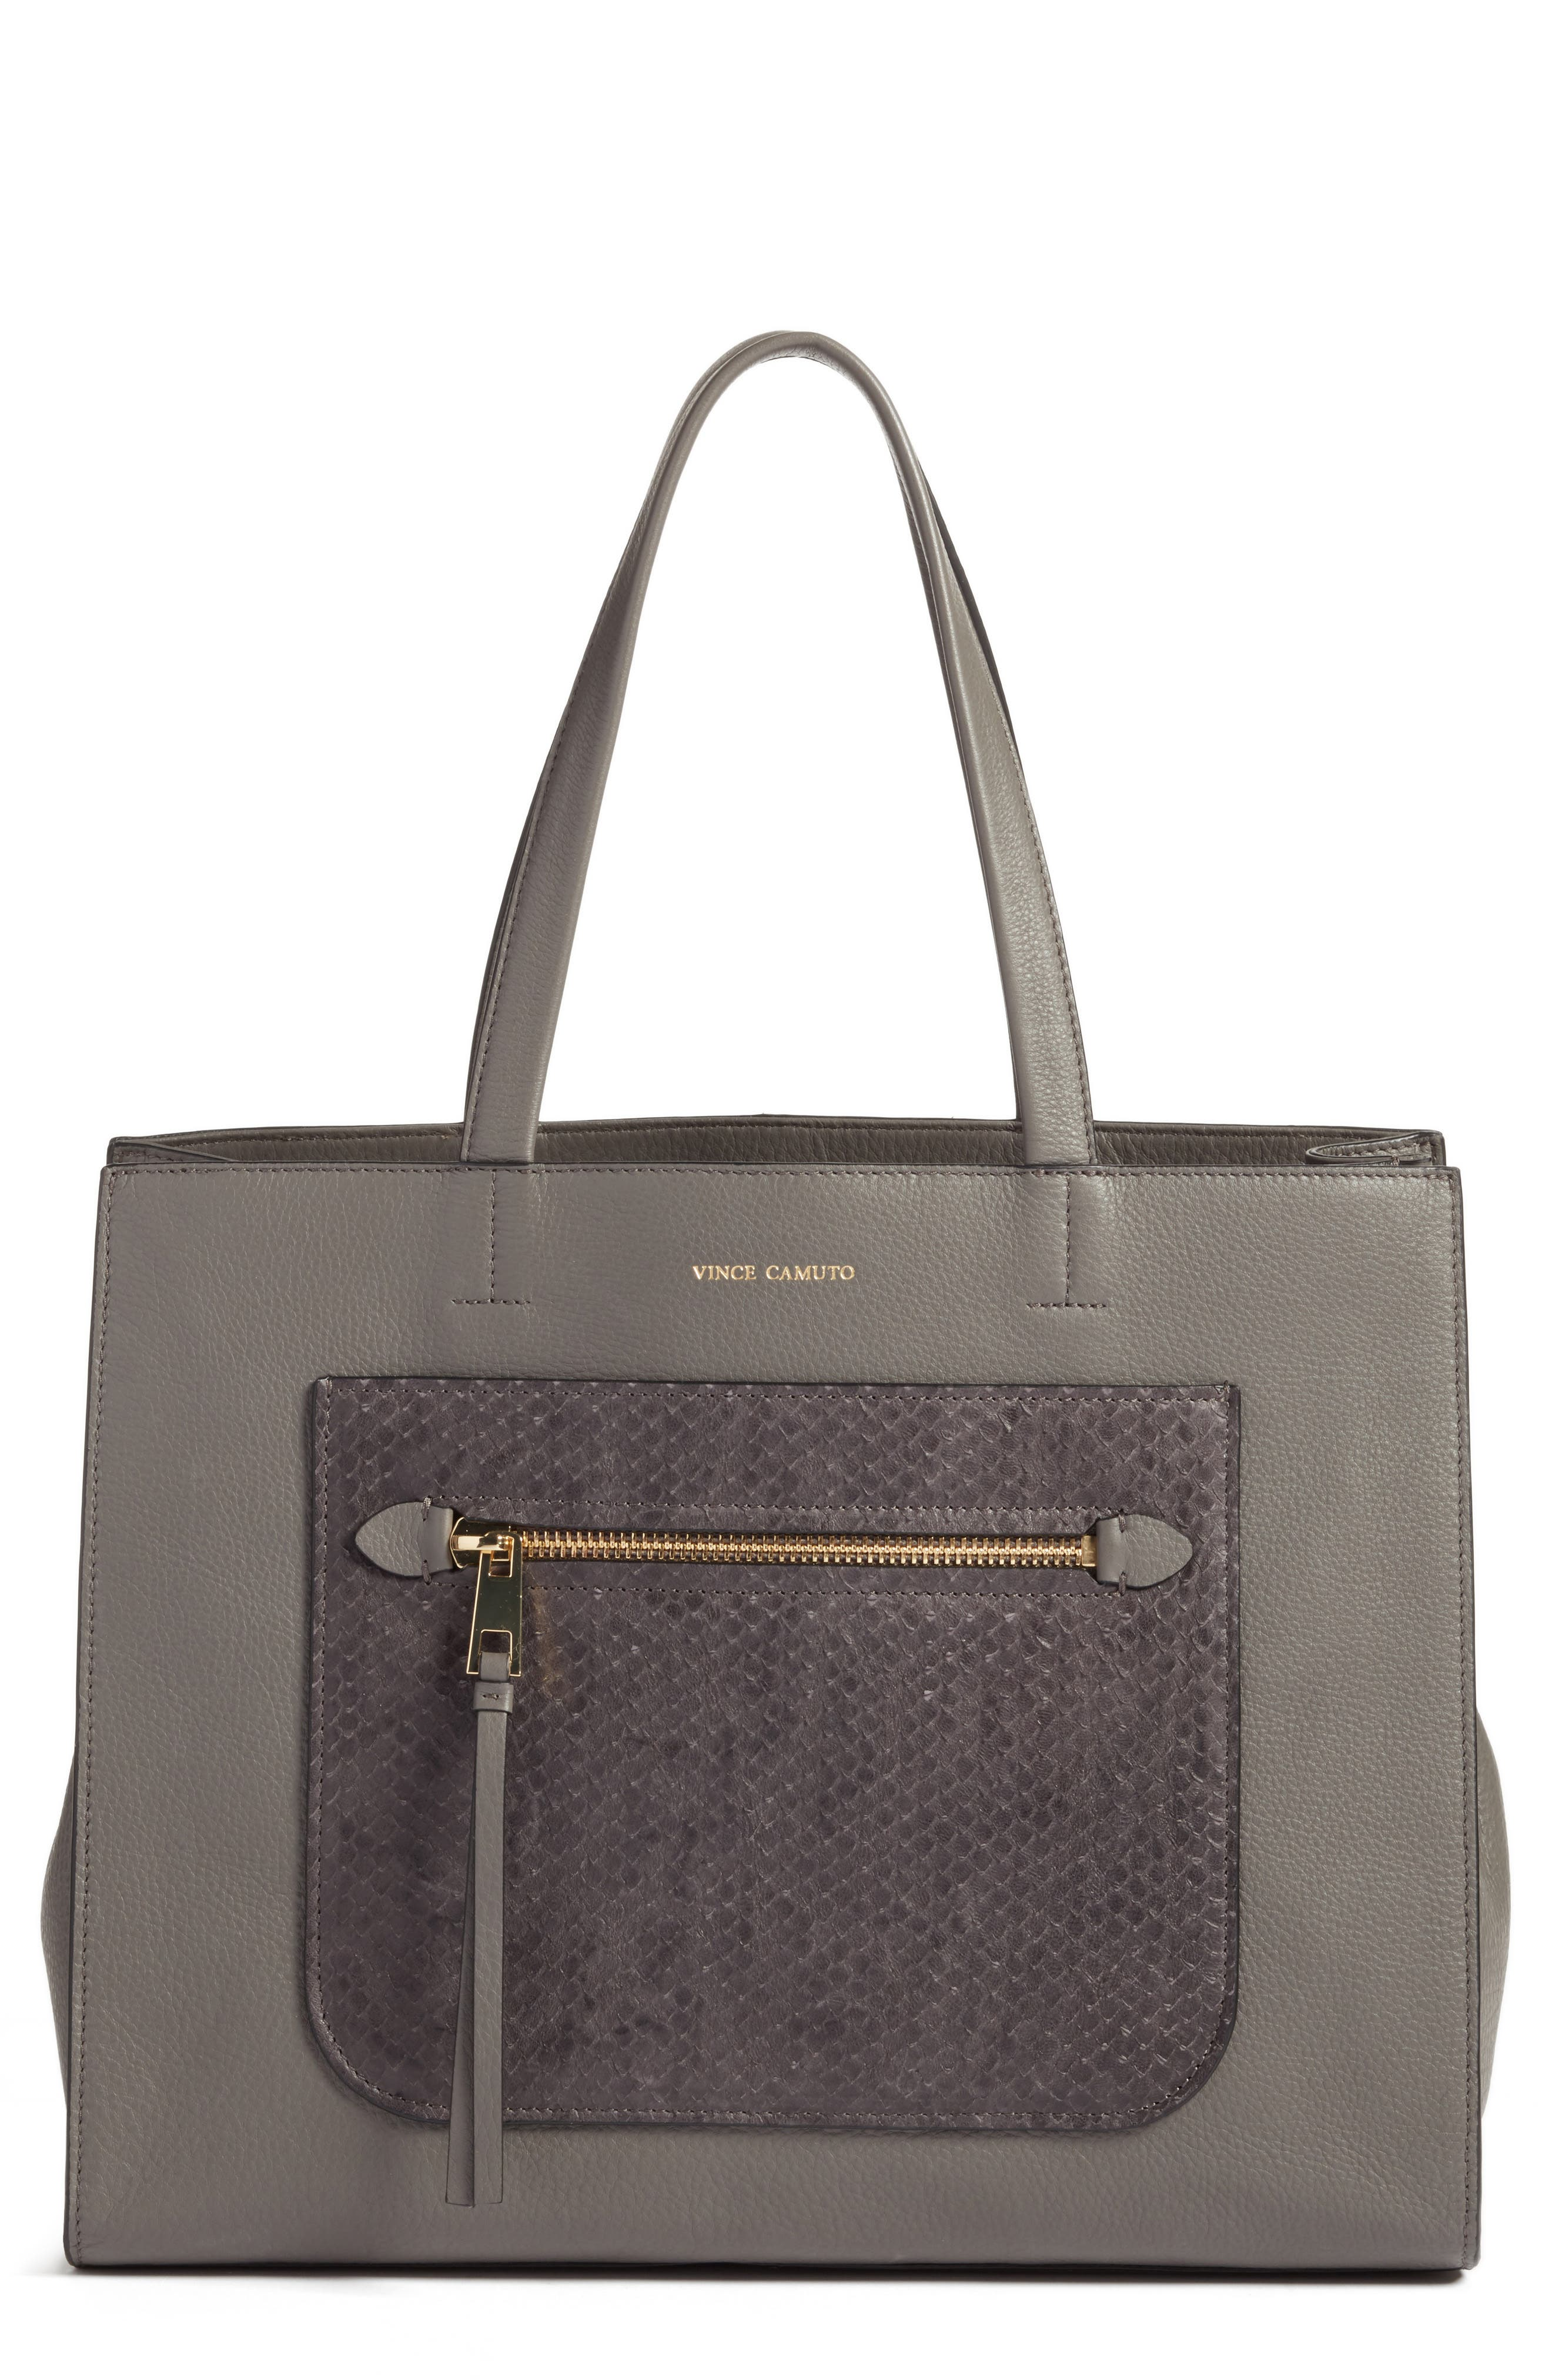 Vince Camuto Elvan Leather Tote (Nordstrom Exclusive)